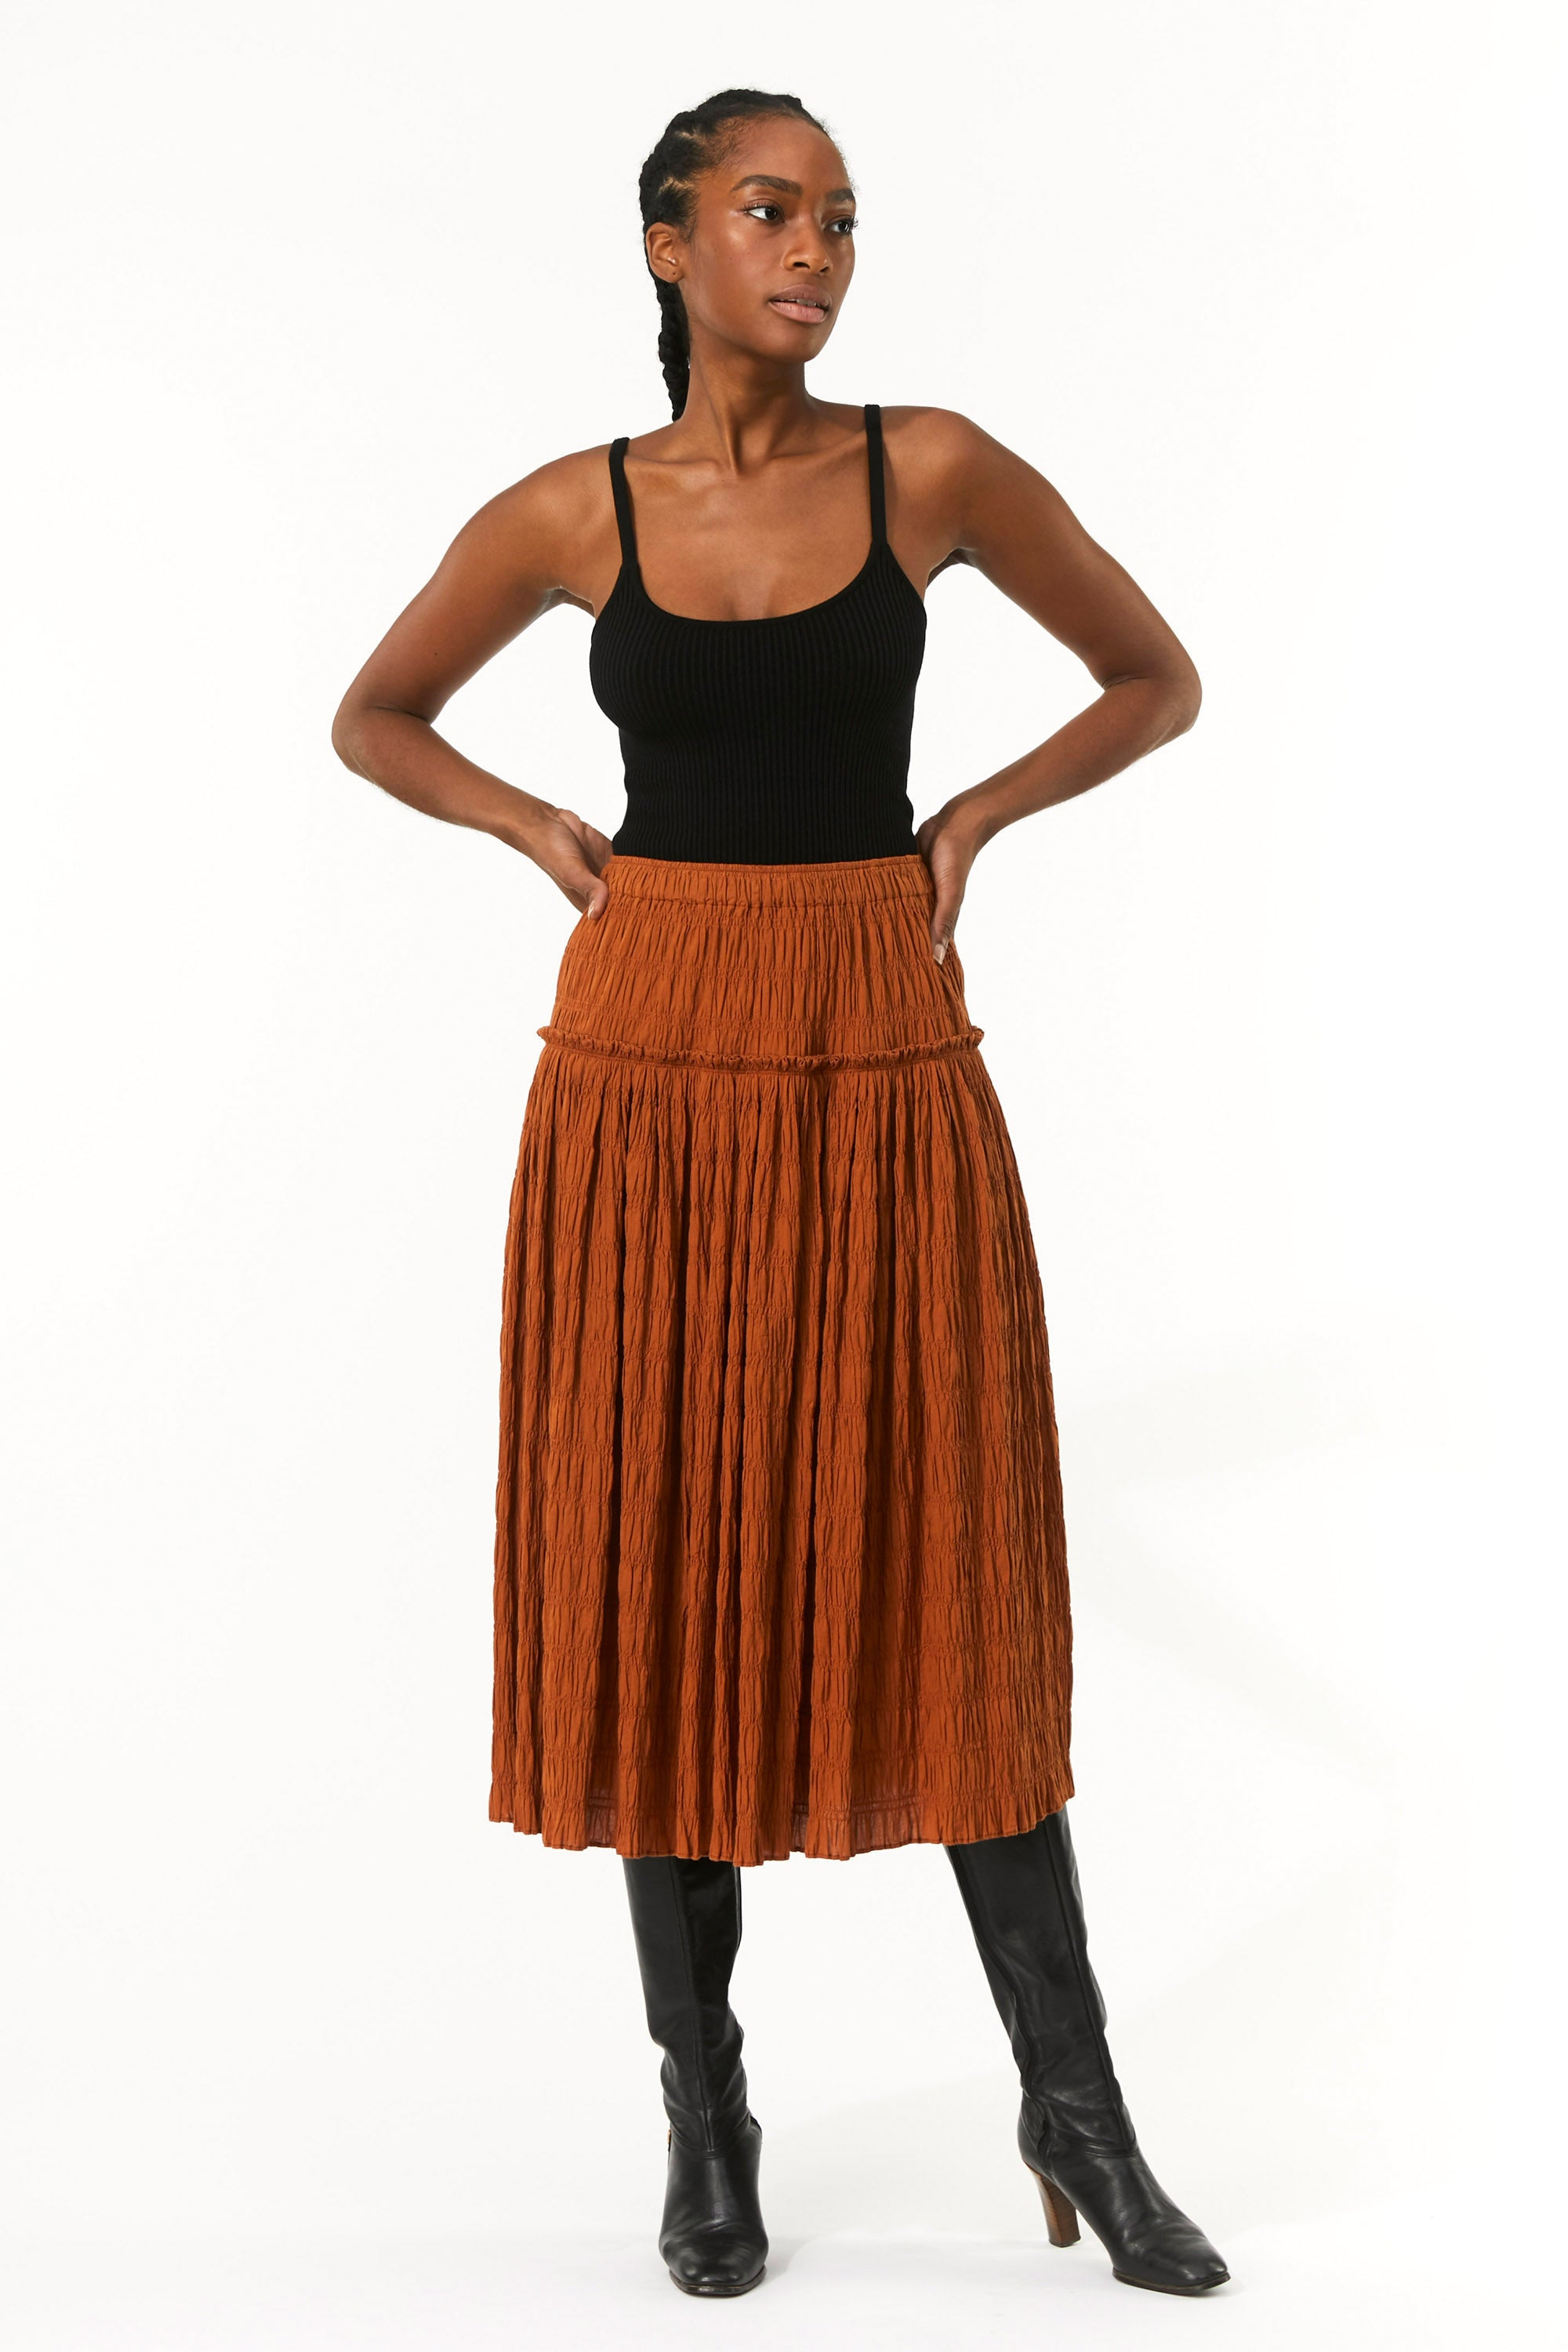 Mara Hoffman Brown Alejandra Skirt in organic cotton (front detail)